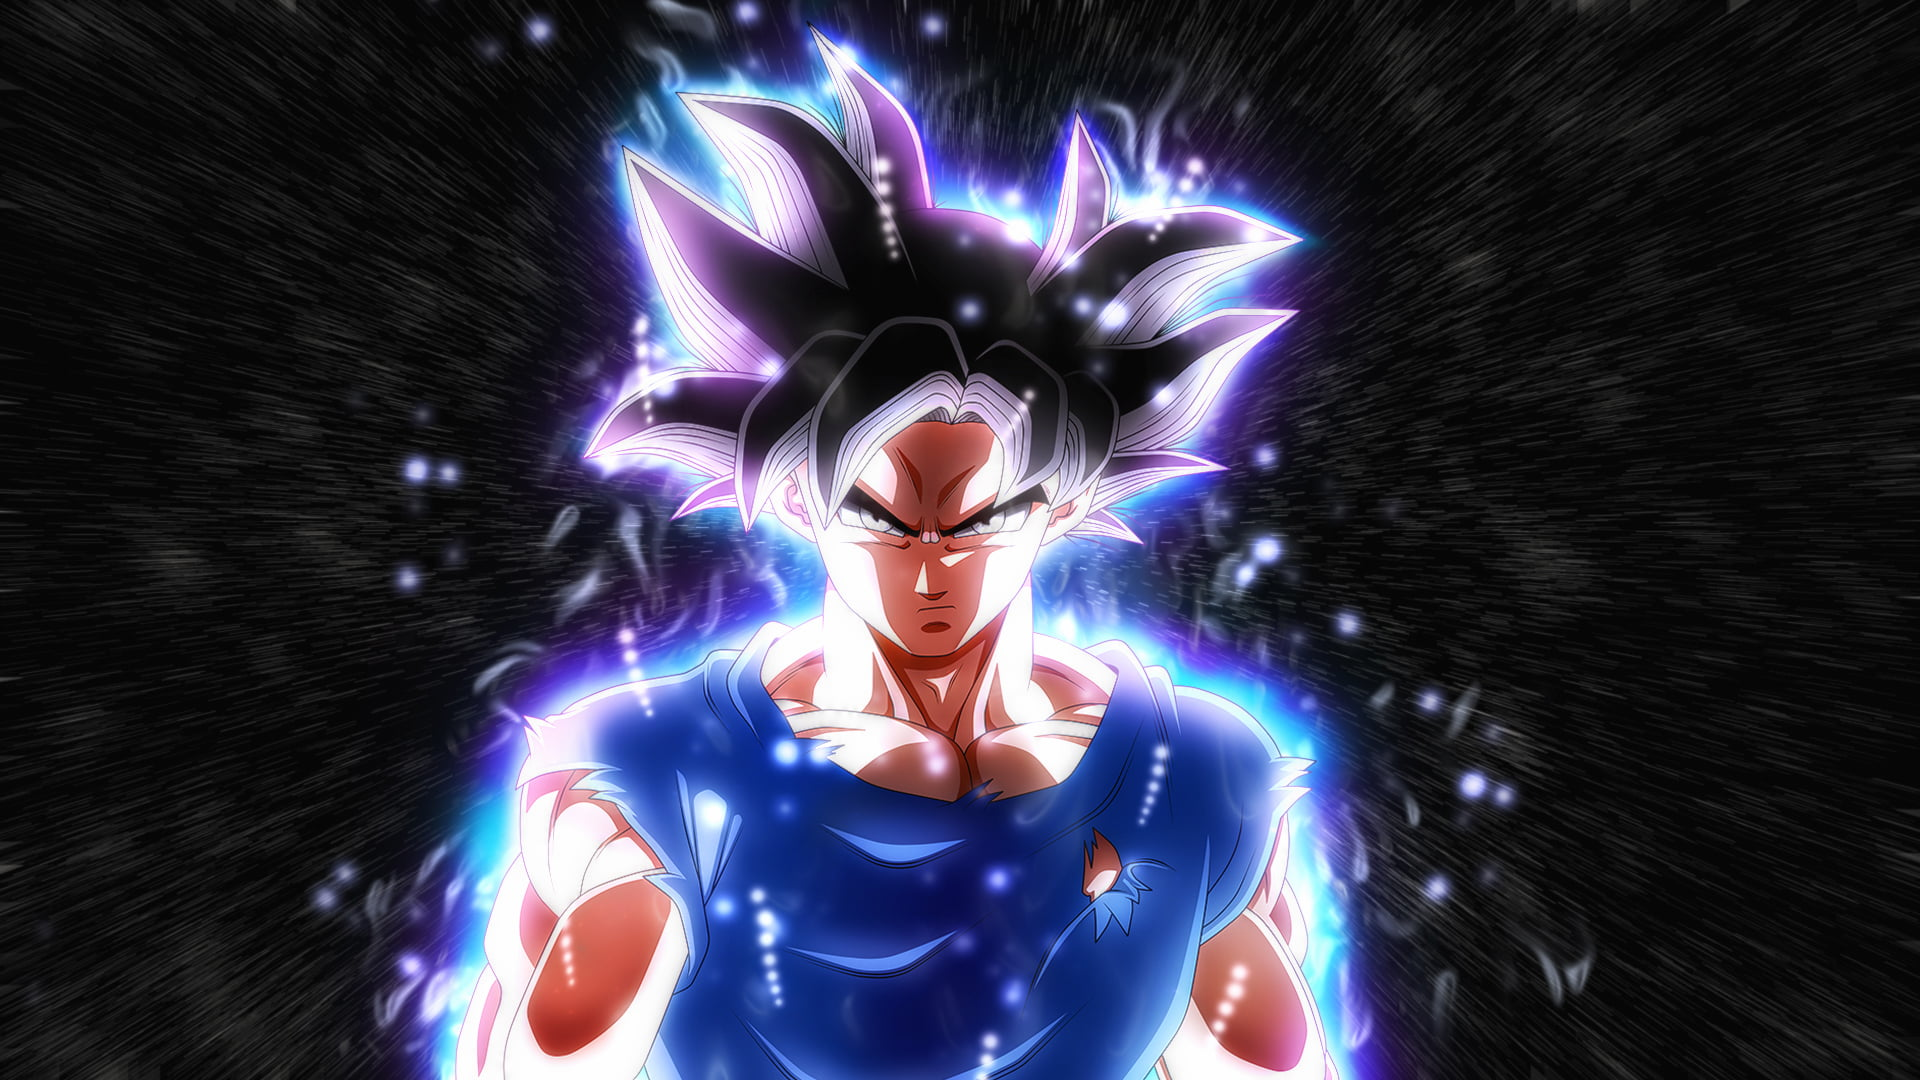 Live Wallpaper For Iphone 3gs Son Goku Hd Wallpaper Wallpaper Flare